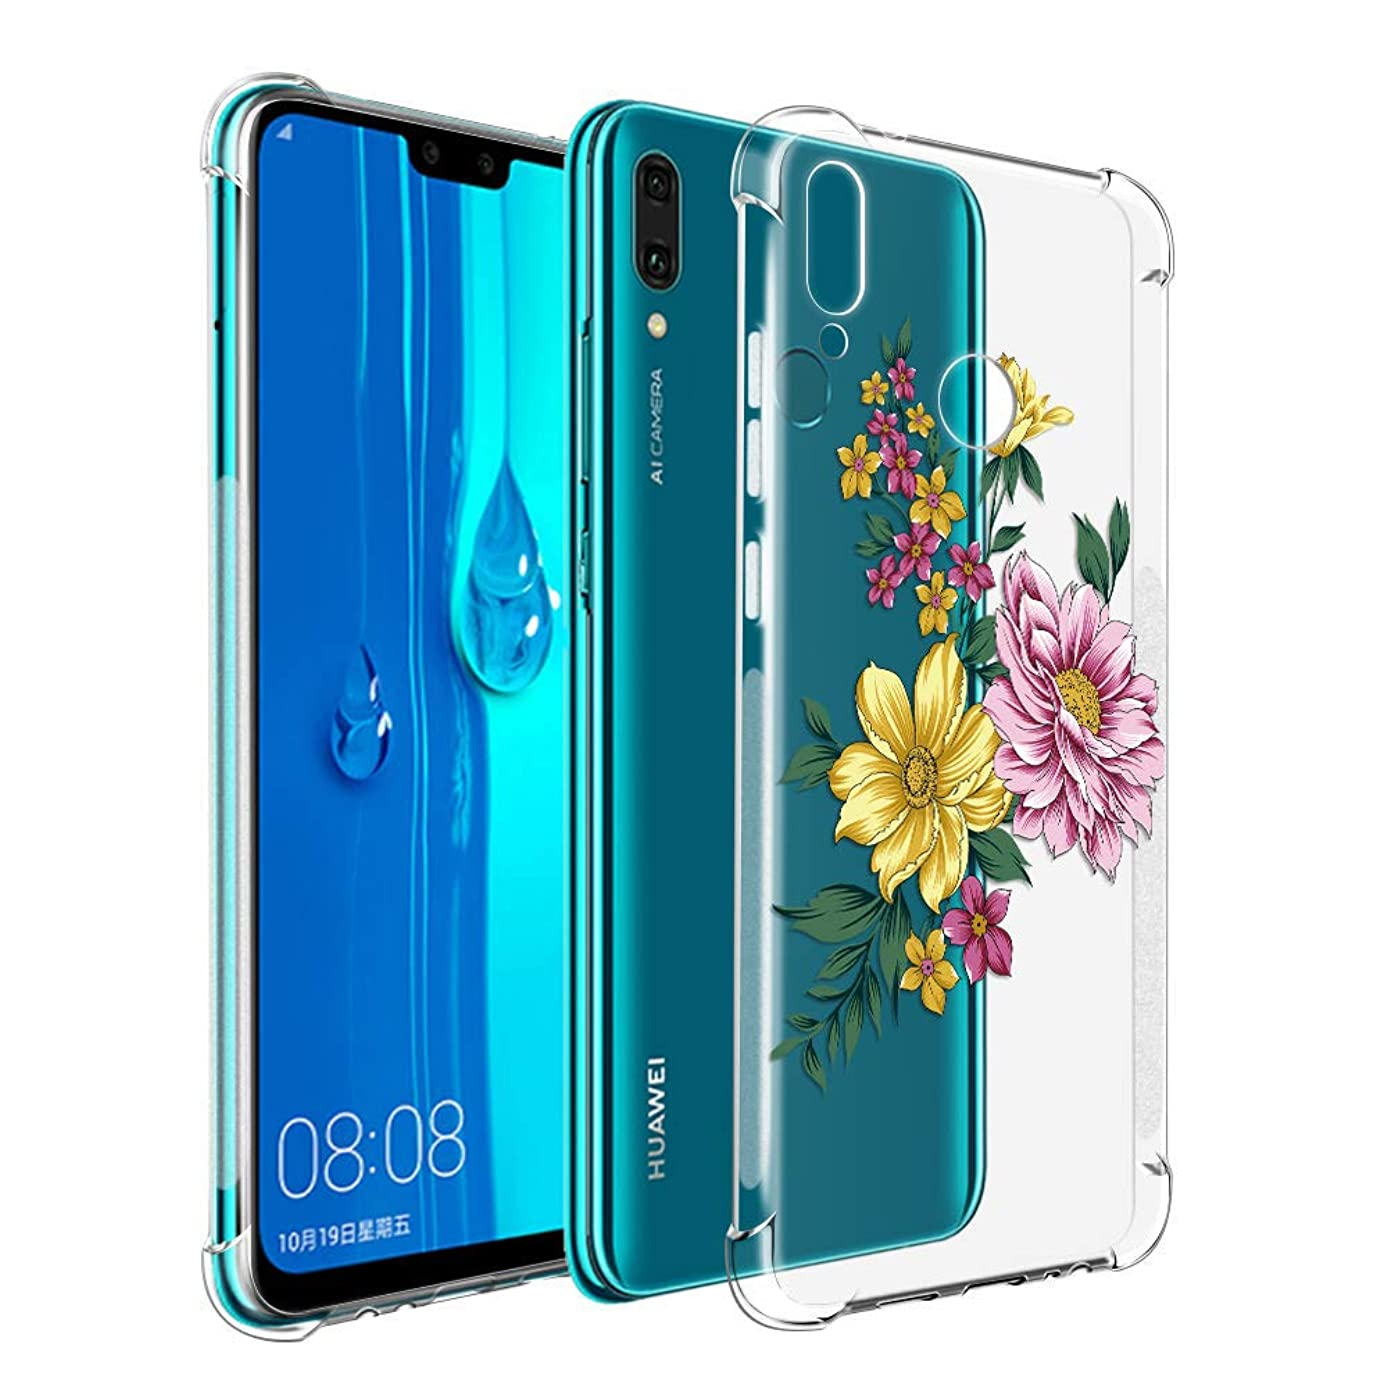 Yoedge Case for Huawei Y9 2019, Clear Floral Pattern [Ultra Slim] Back Cover Shockproof Soft TPU Silicone Bumper Case with Protective Air Cushion Corners for Huawei Y9 2019 (Yellow)